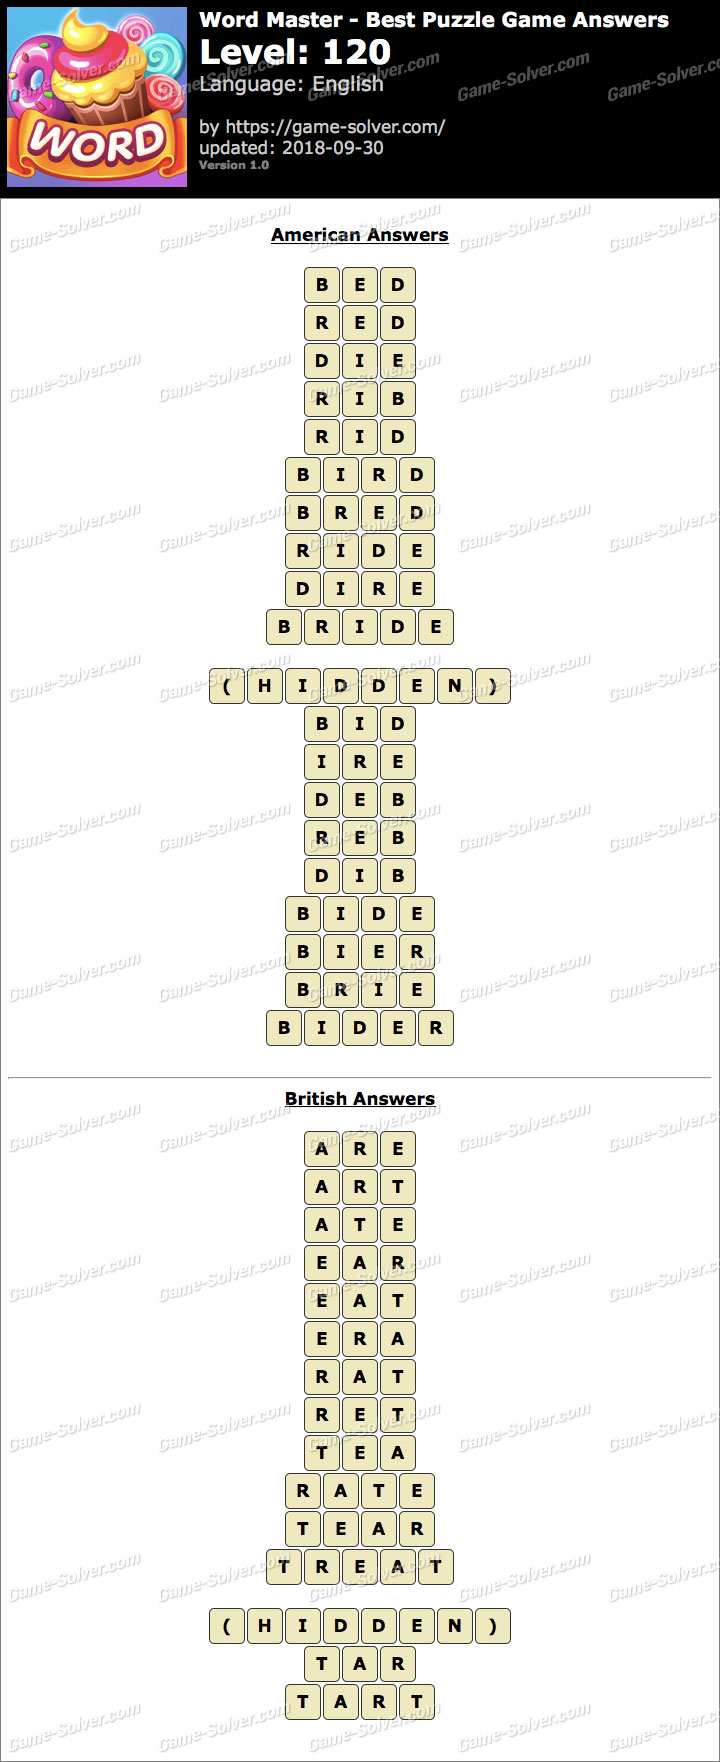 Word Master-Best Puzzle Game Level 120 Answers